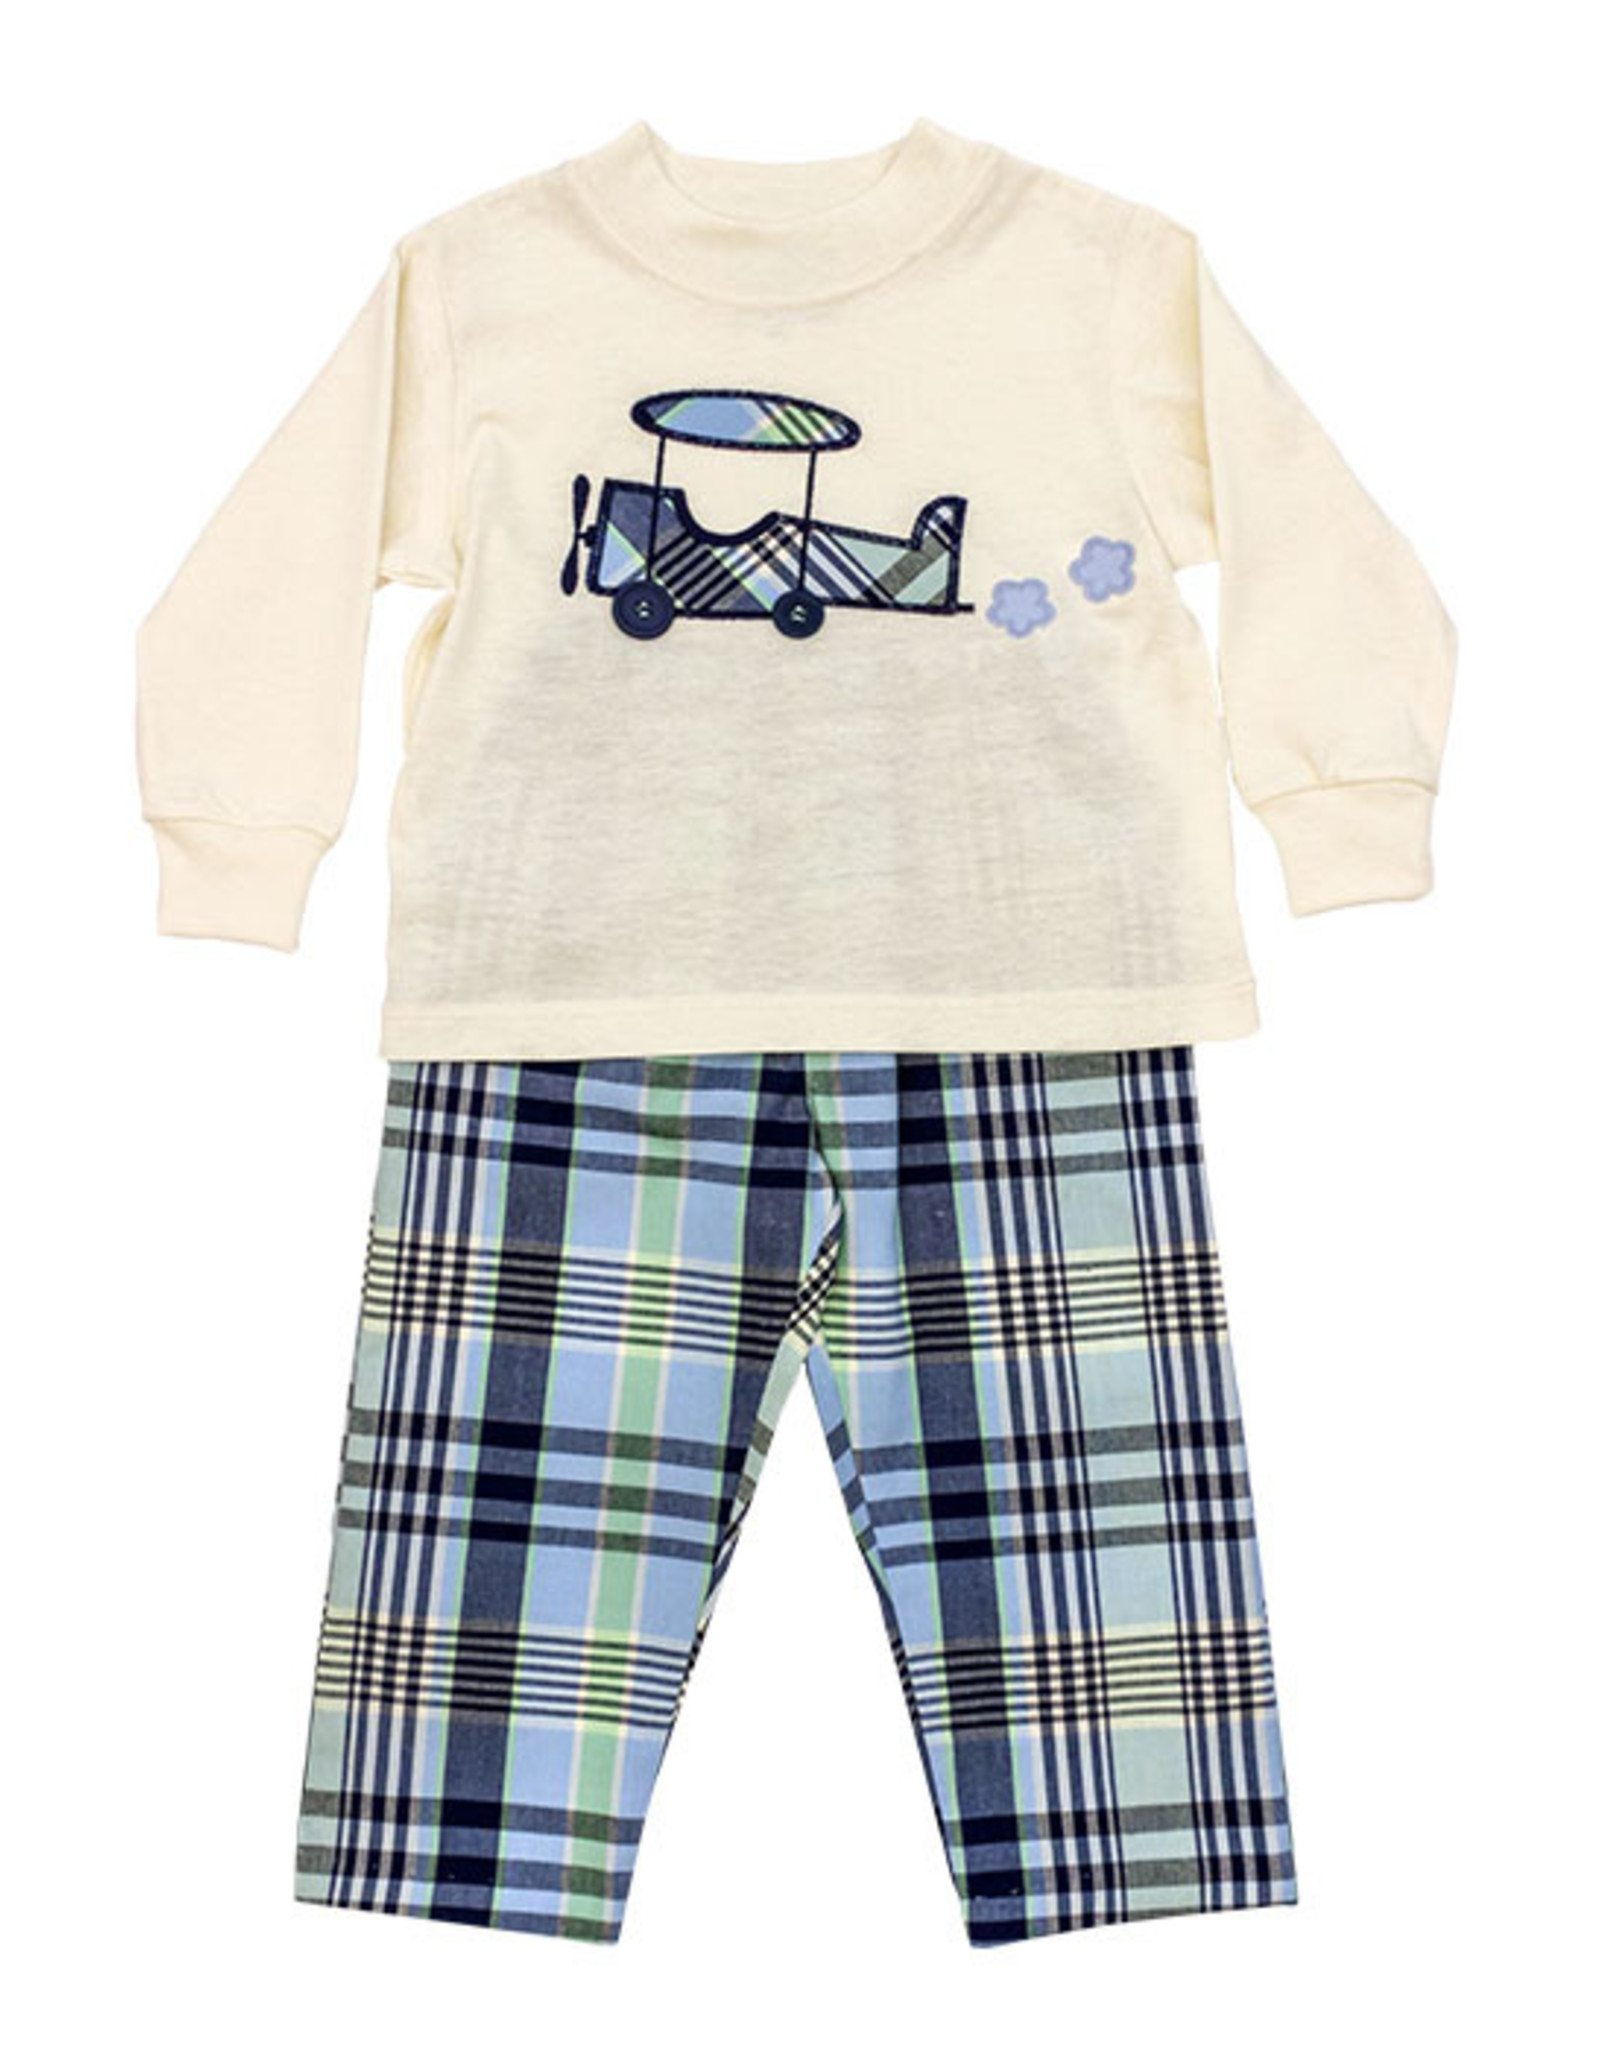 The Bailey Boys Airplane Boys Pant Set